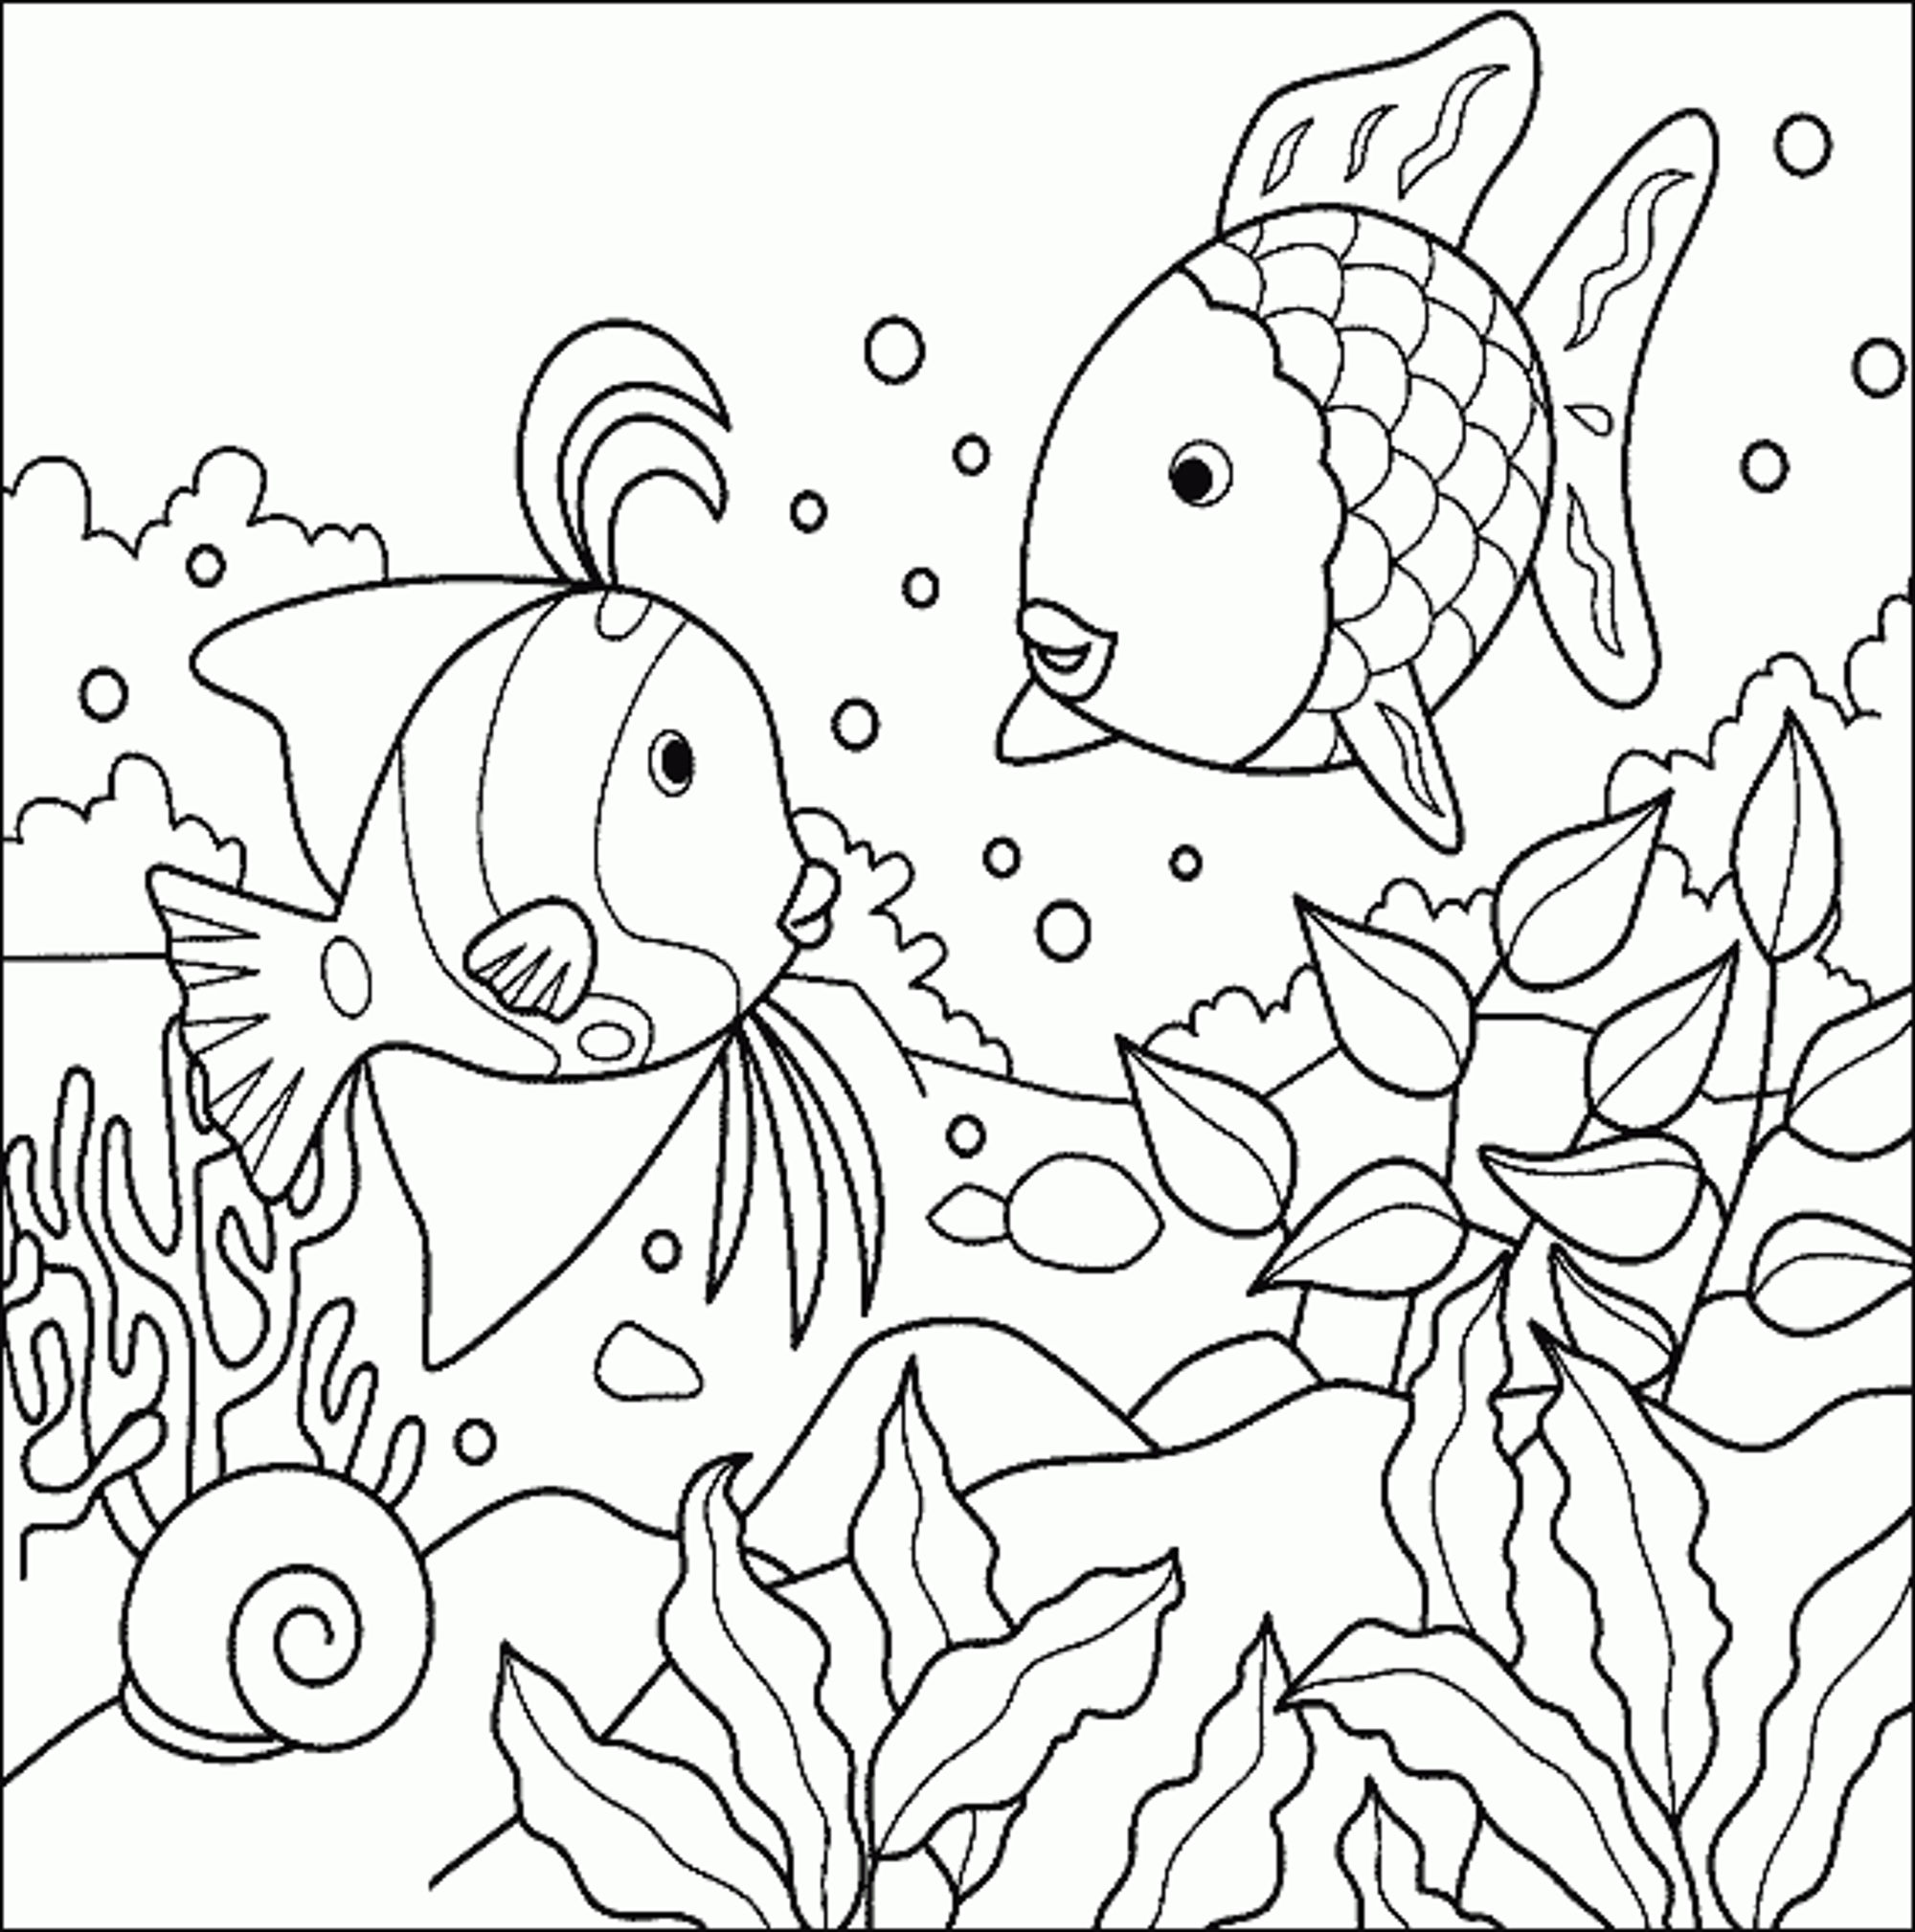 2000x2018 Fish Coloring Pages Print Download Cute And Educative